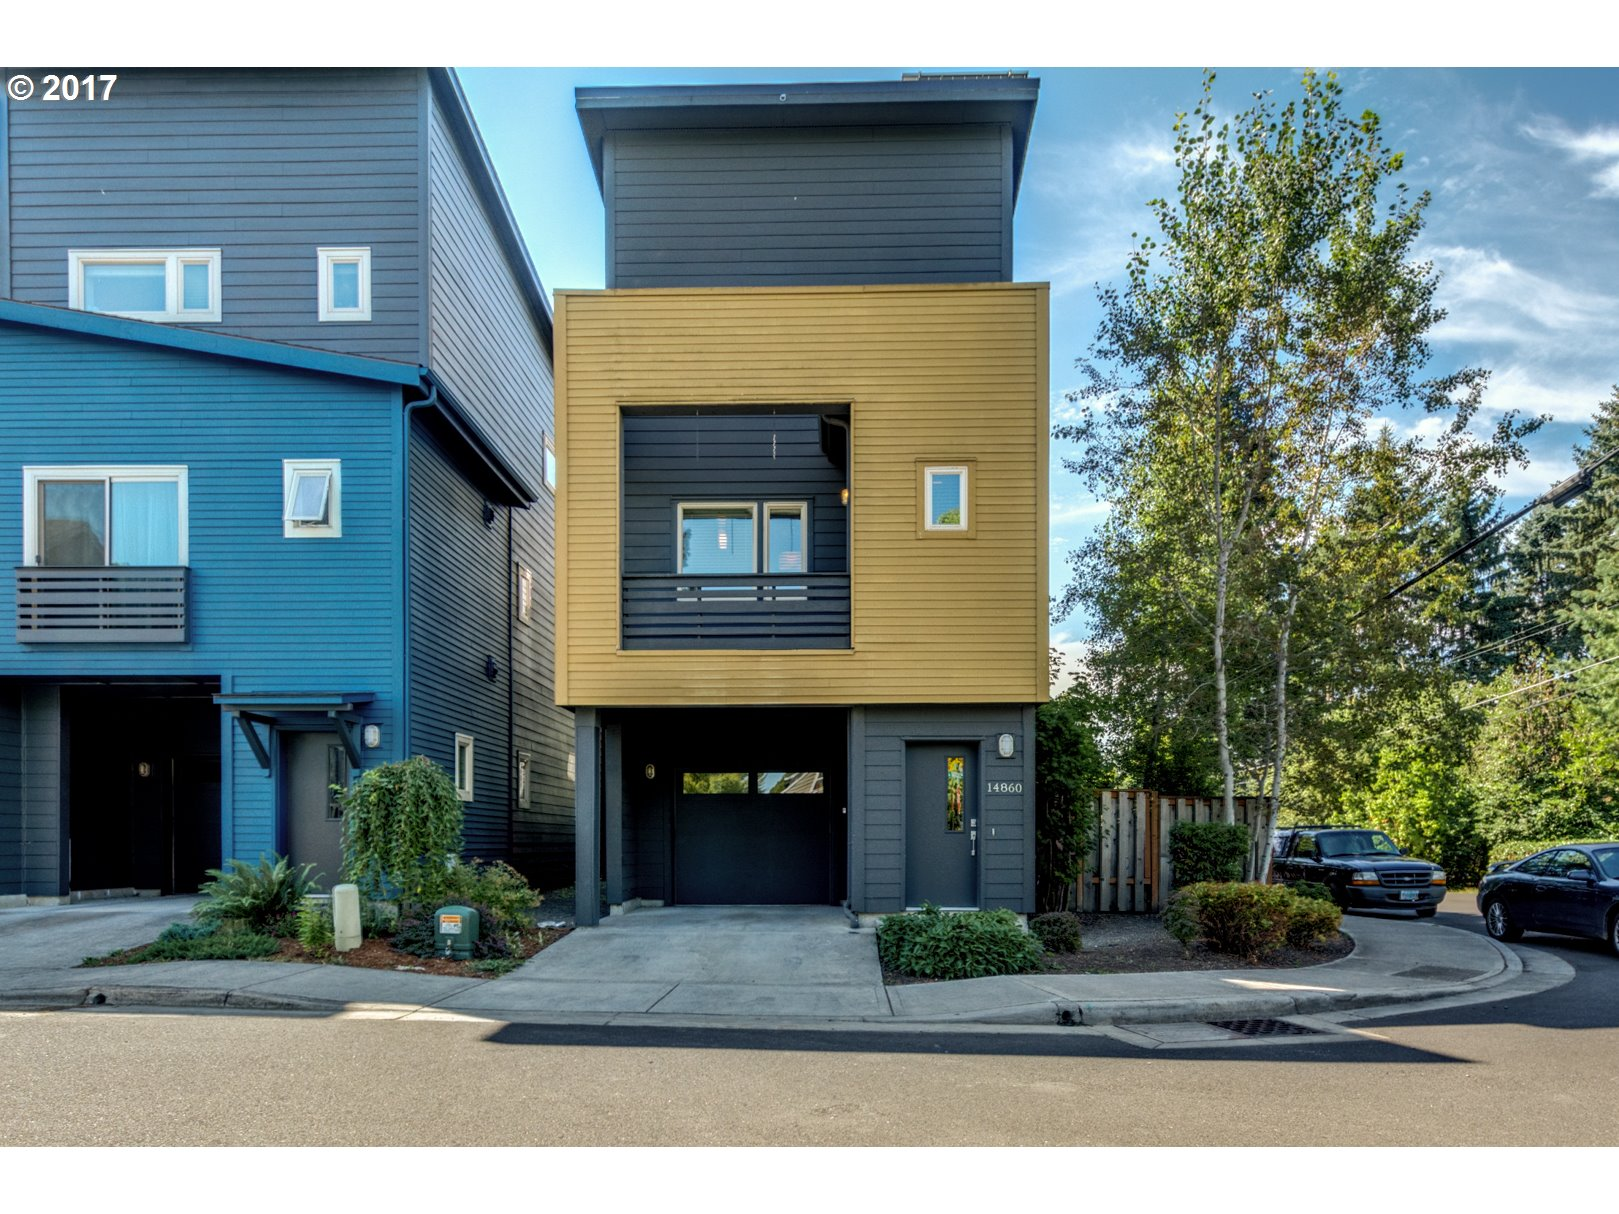 One of Portland's most 'ENERGY EFFICIENT HOMES' - for technical details, please check out 'Net Zero Energy Home Case Study' in the PDF Doc(s) section. Also, go to www.HomeEnergyScore.com for the new rules Jan 1, 2018